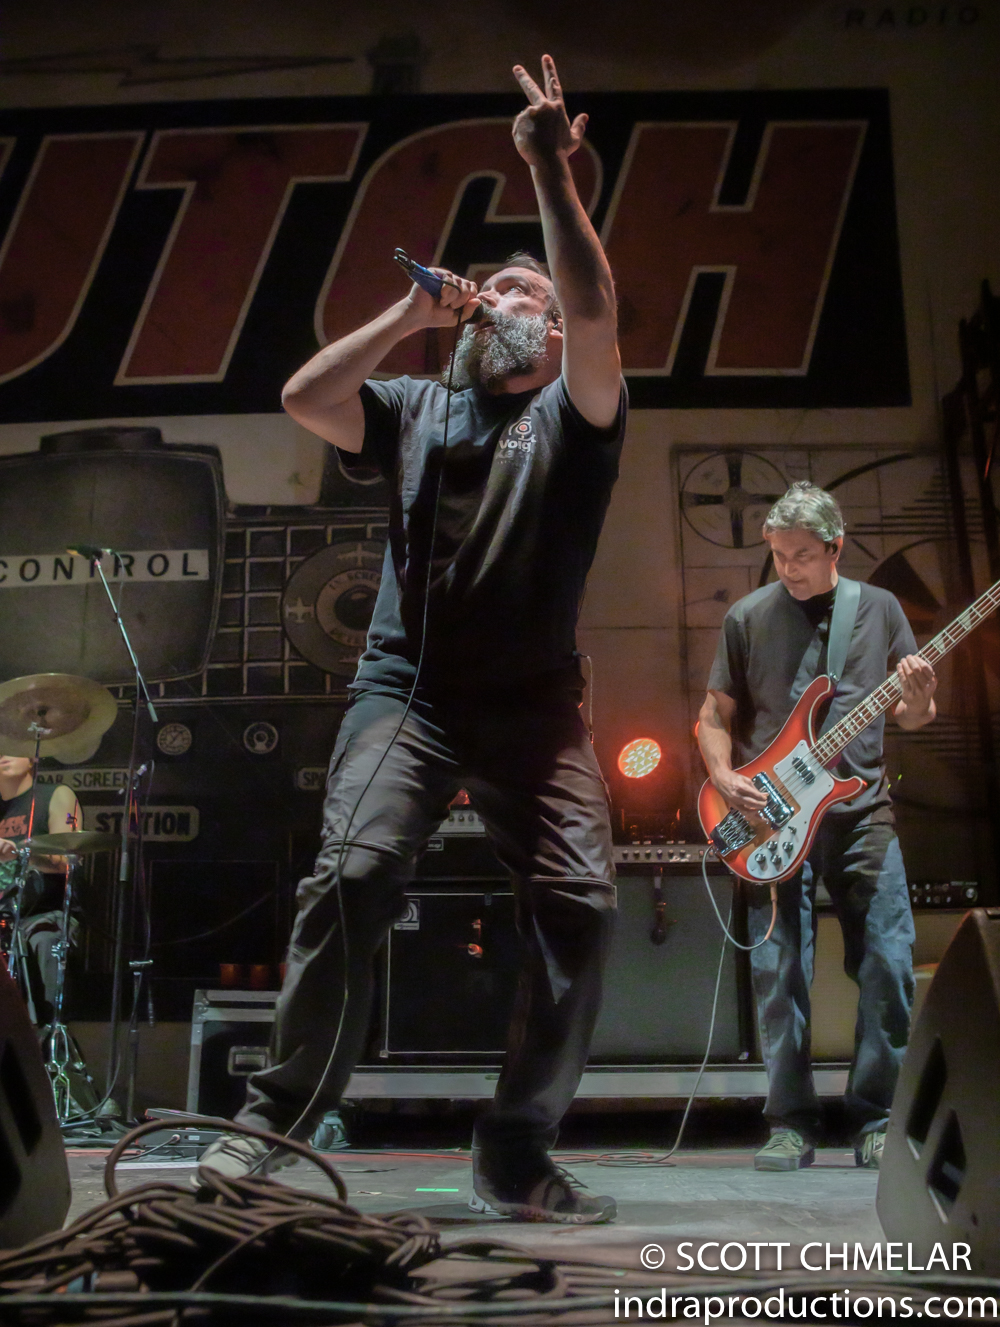 Clutch - AMERICAN TOUR FALL 2019 at Red Hat Amphitheater in Raleigh NC September 24, 2019. Photos by Scott Chmelar for INDRA Magazine.